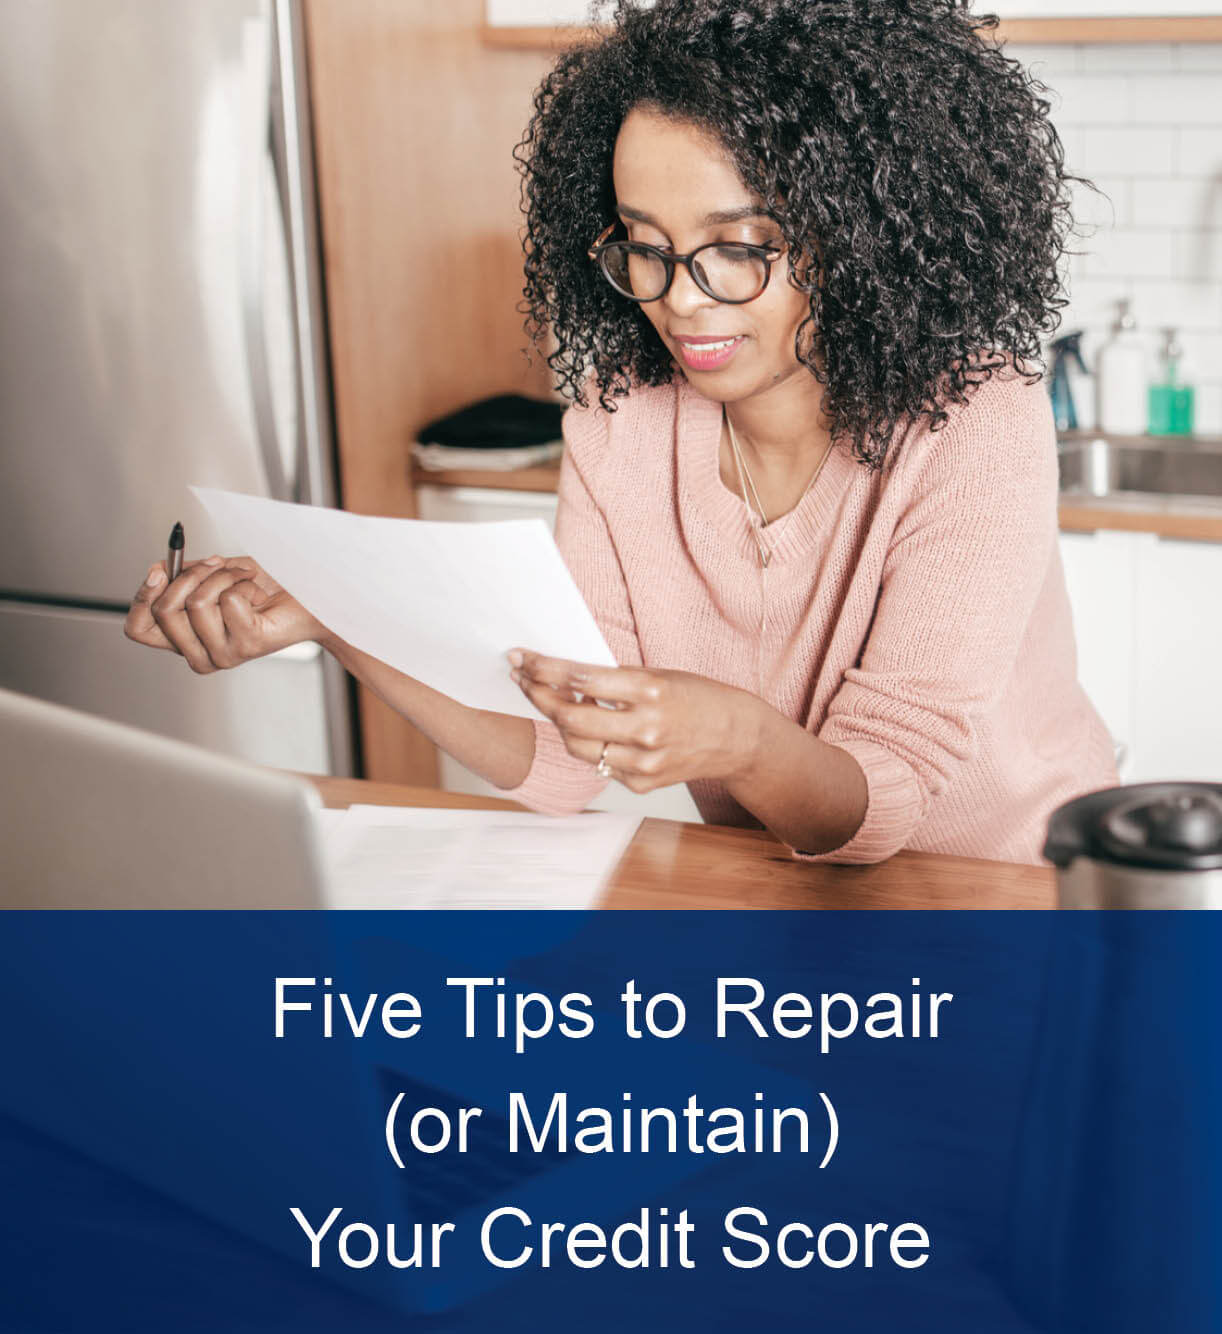 Five Tips to Repair Your Credit Score